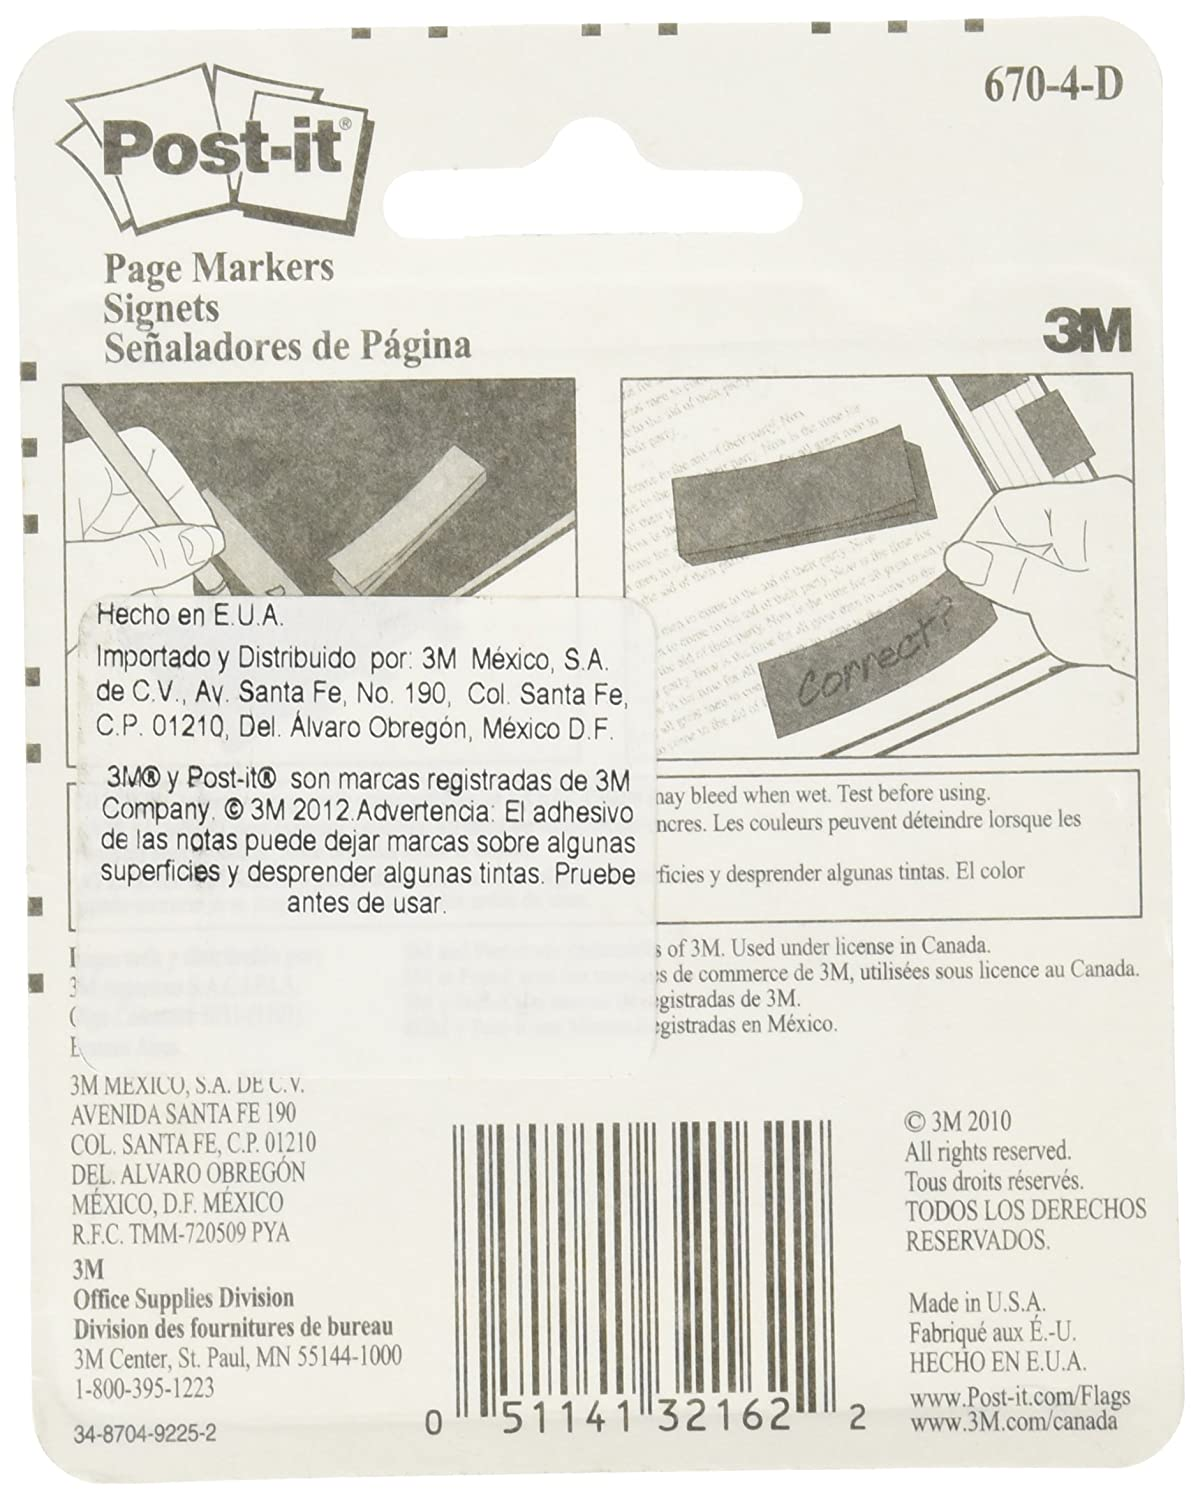 Post-it/® Page Marker 670-4-D 1//2 in x 1.75 in Rainbow 12,7 mm x 44,4 mm